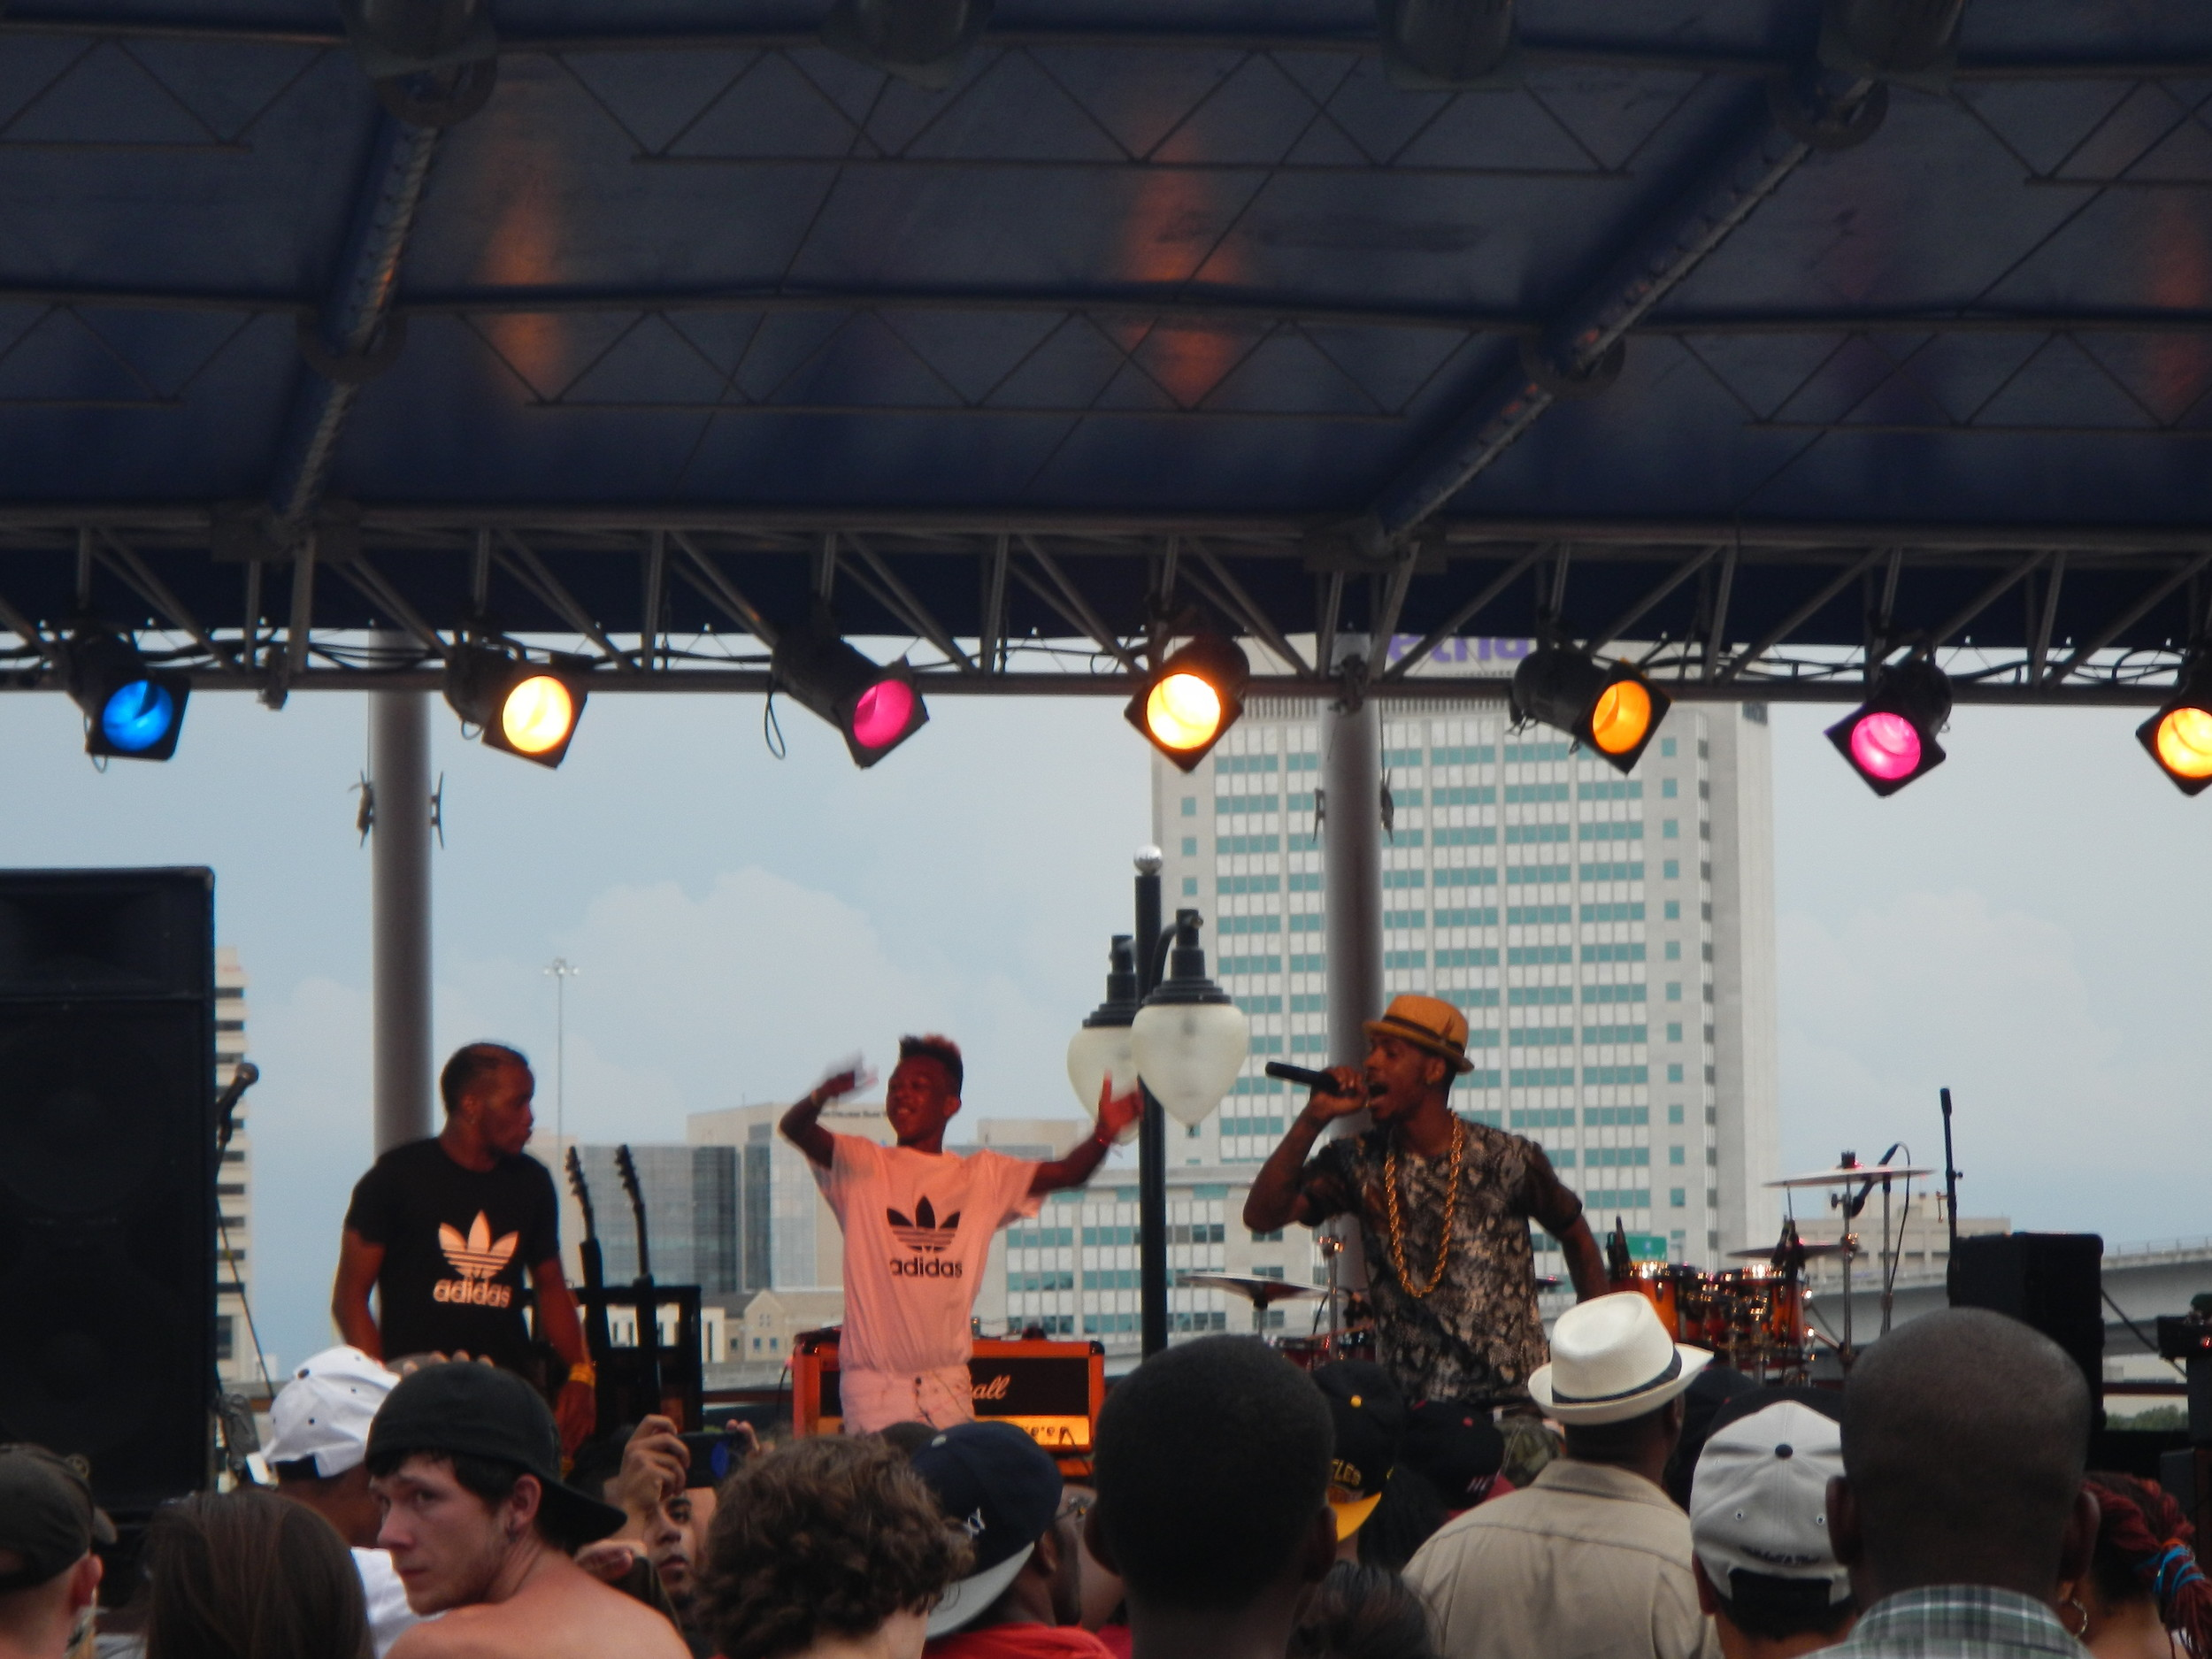 One of the New Boyz performs in front of a crowd at the I Love Music Tour.